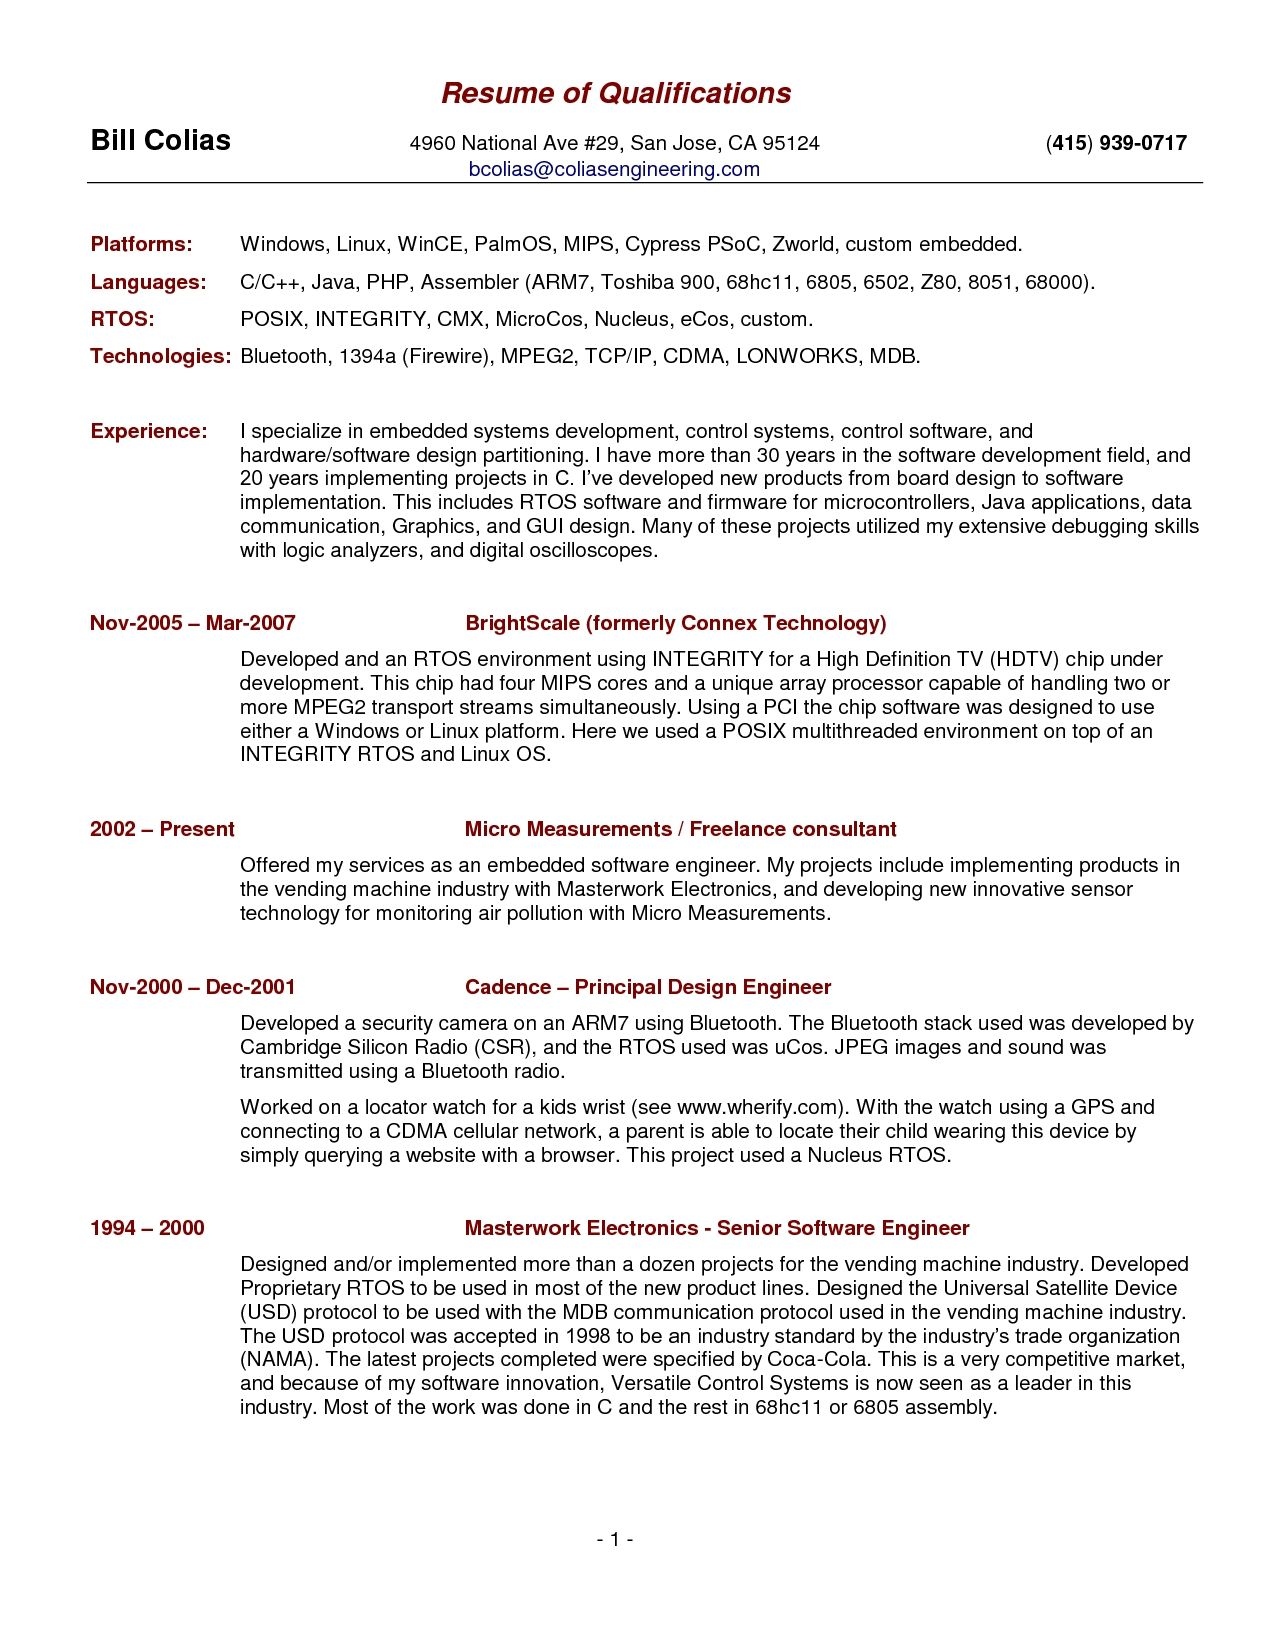 Free Resume Template Summary Qualifications Free Resume Templates